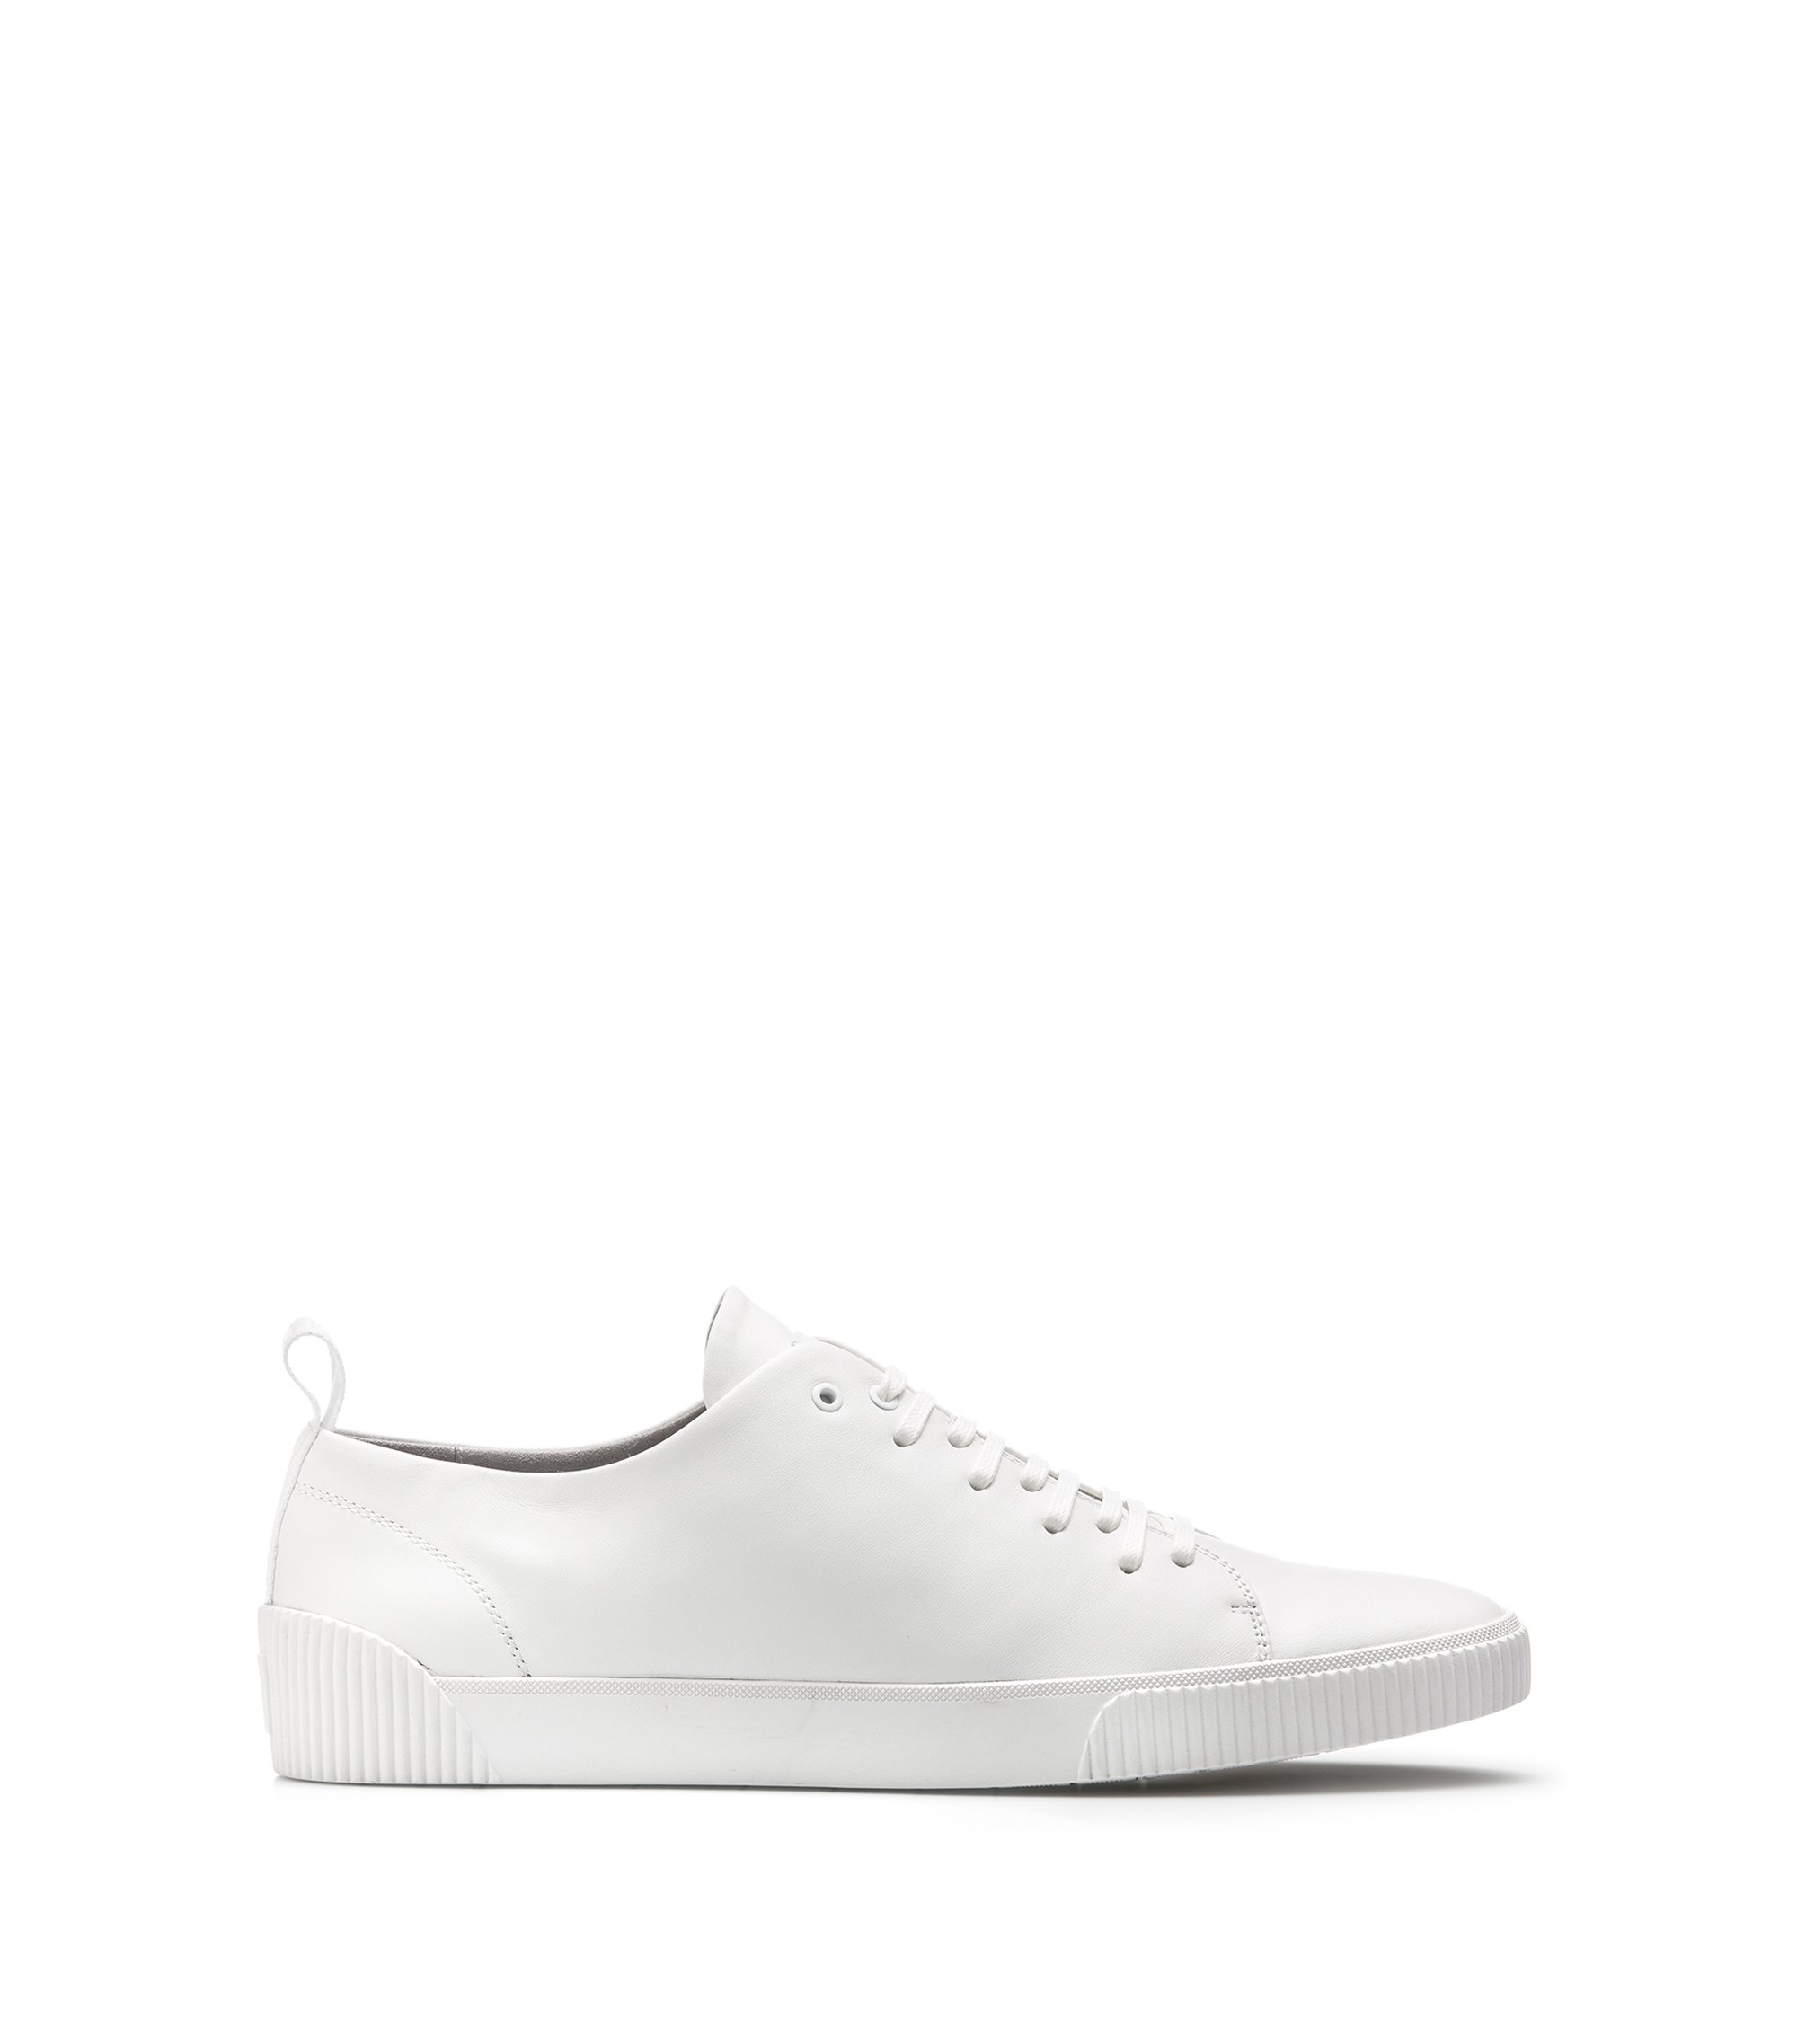 Sneakers low-top in pelle nappa con logo, Bianco